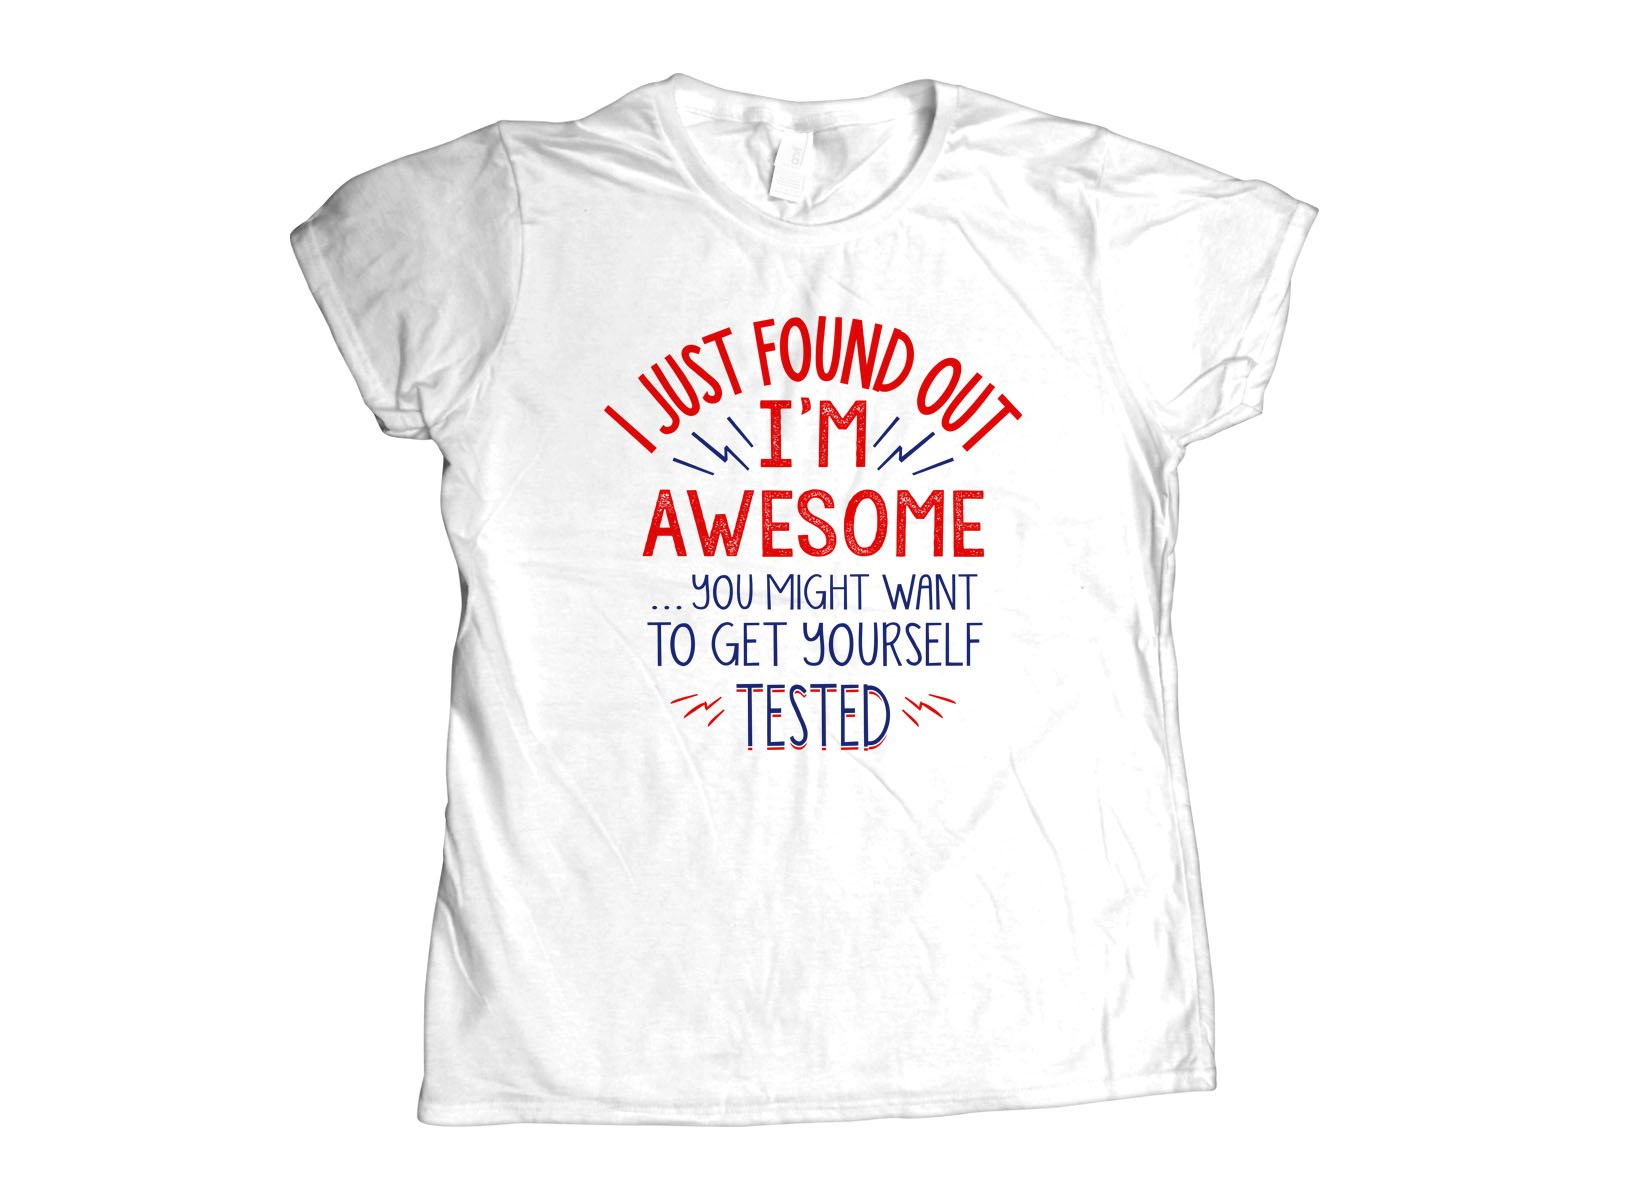 I'm Awesome, Get Yourself Tested on Womens T-Shirt